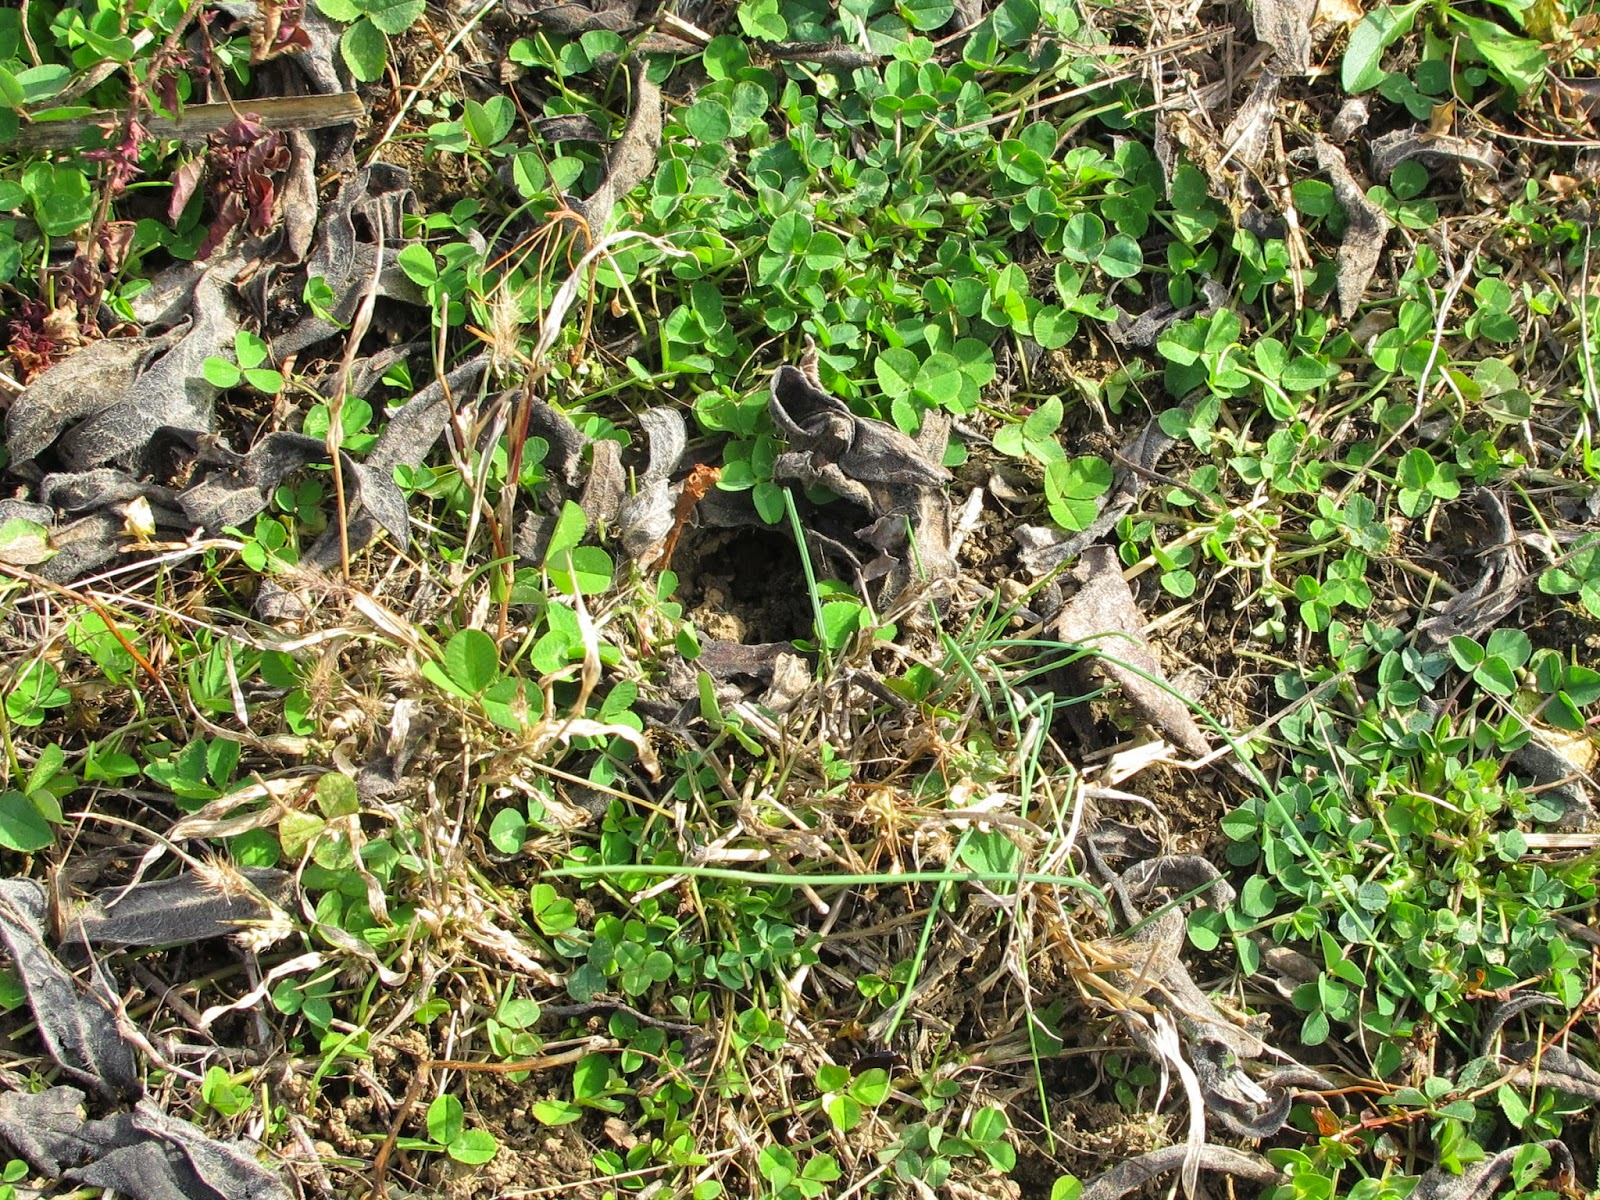 blue jay barrens spider burrow closed for the winter